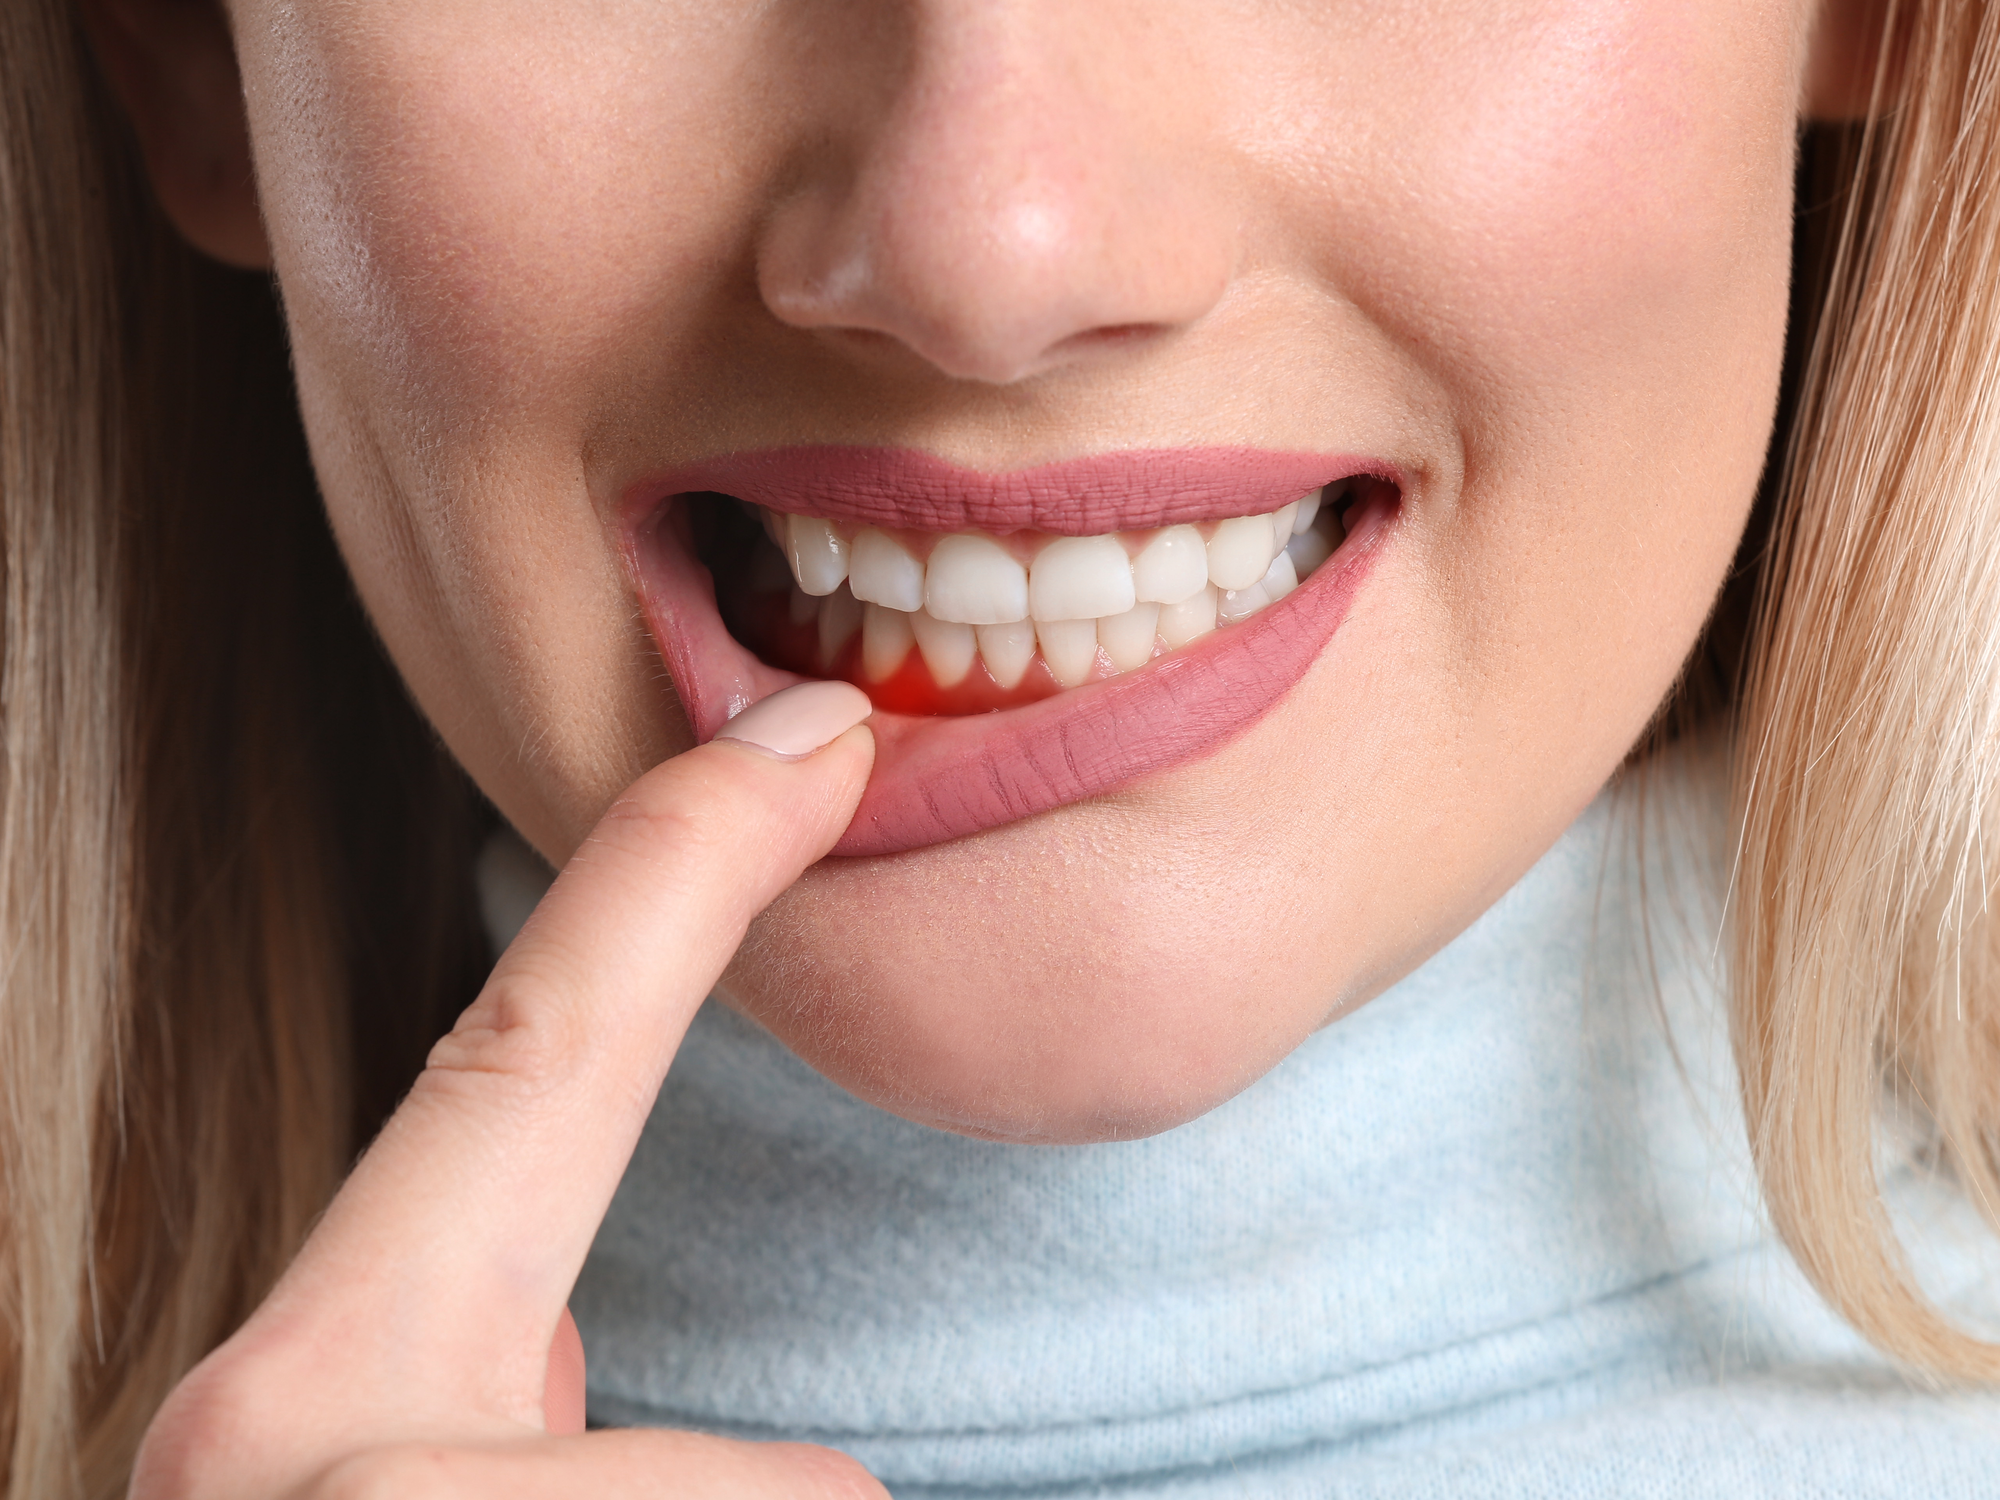 Most Common Signs of Periodontal Disease